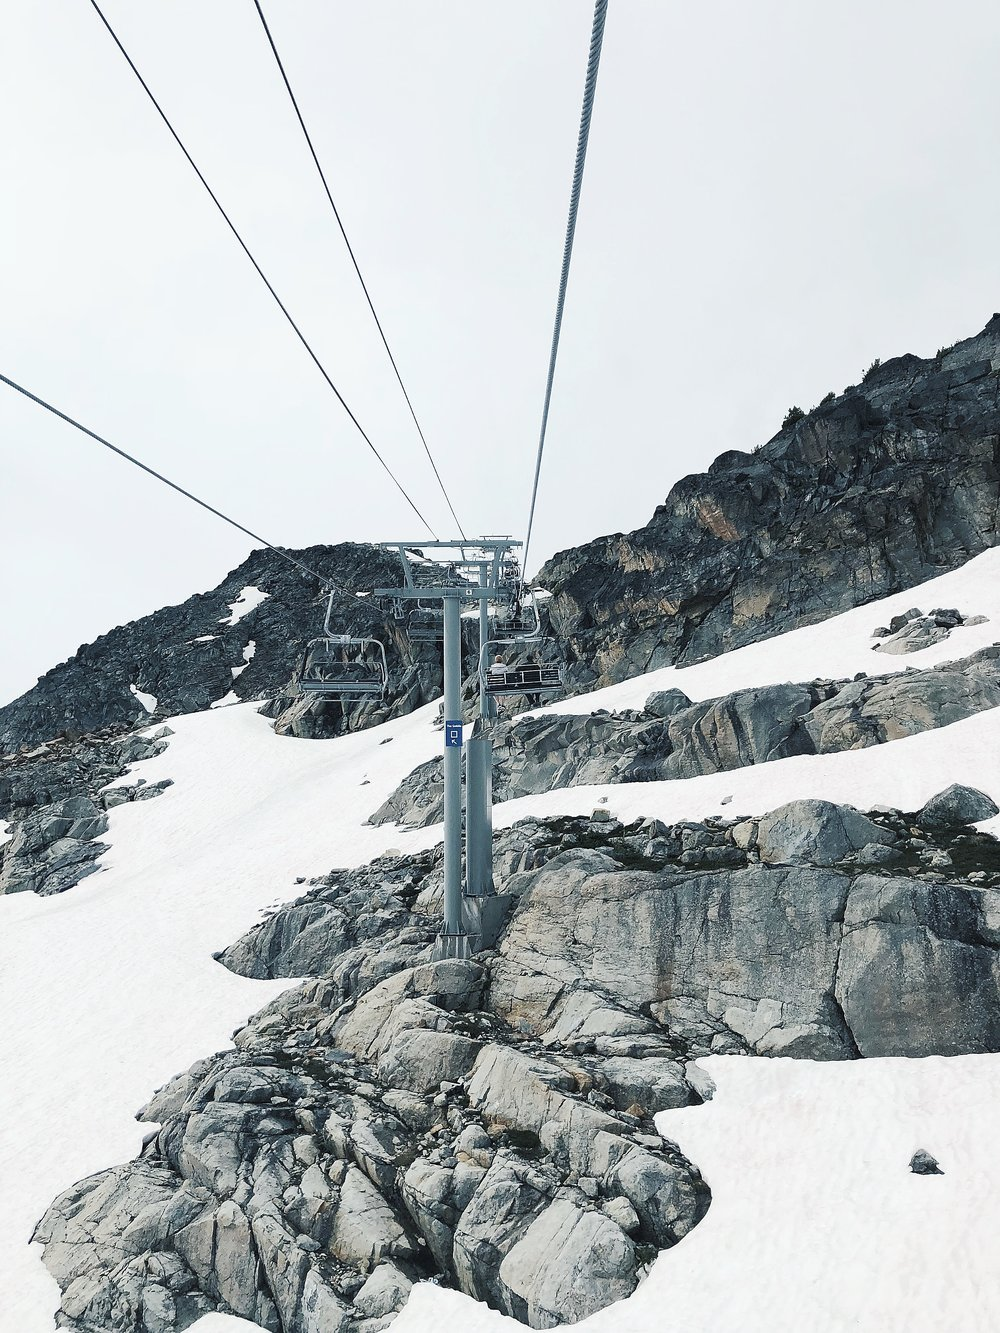 Peak Express chairlift to Whistler Suspension Bridge